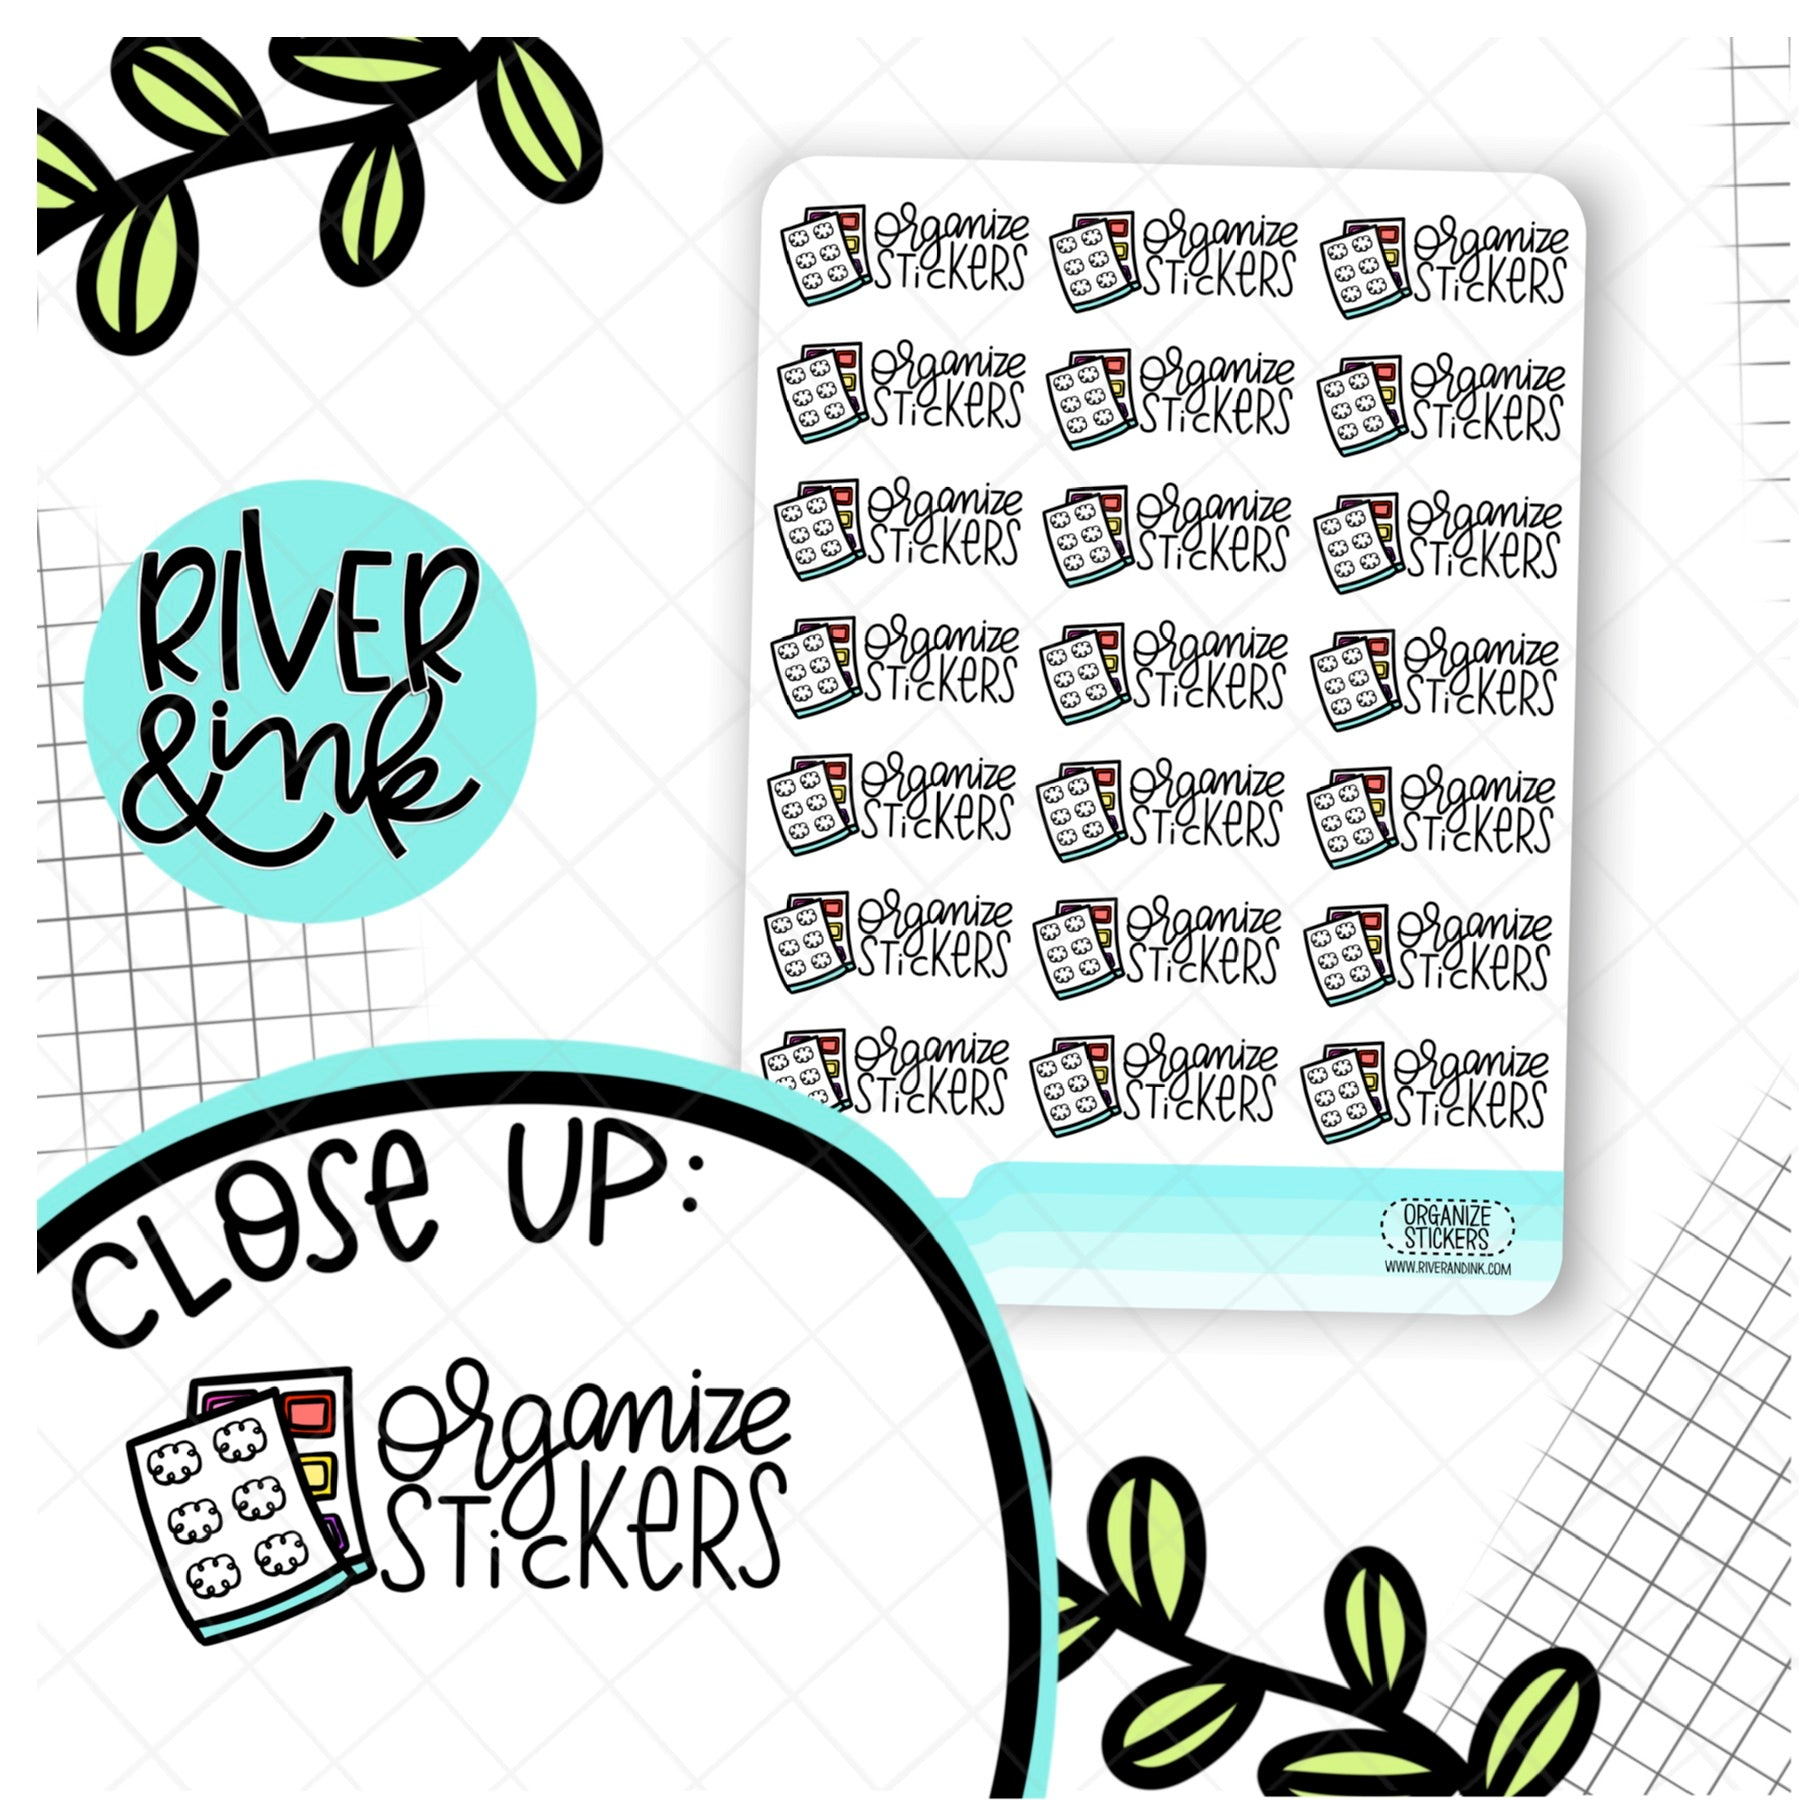 Organize Stickers | Hand Lettered Planner Stickers